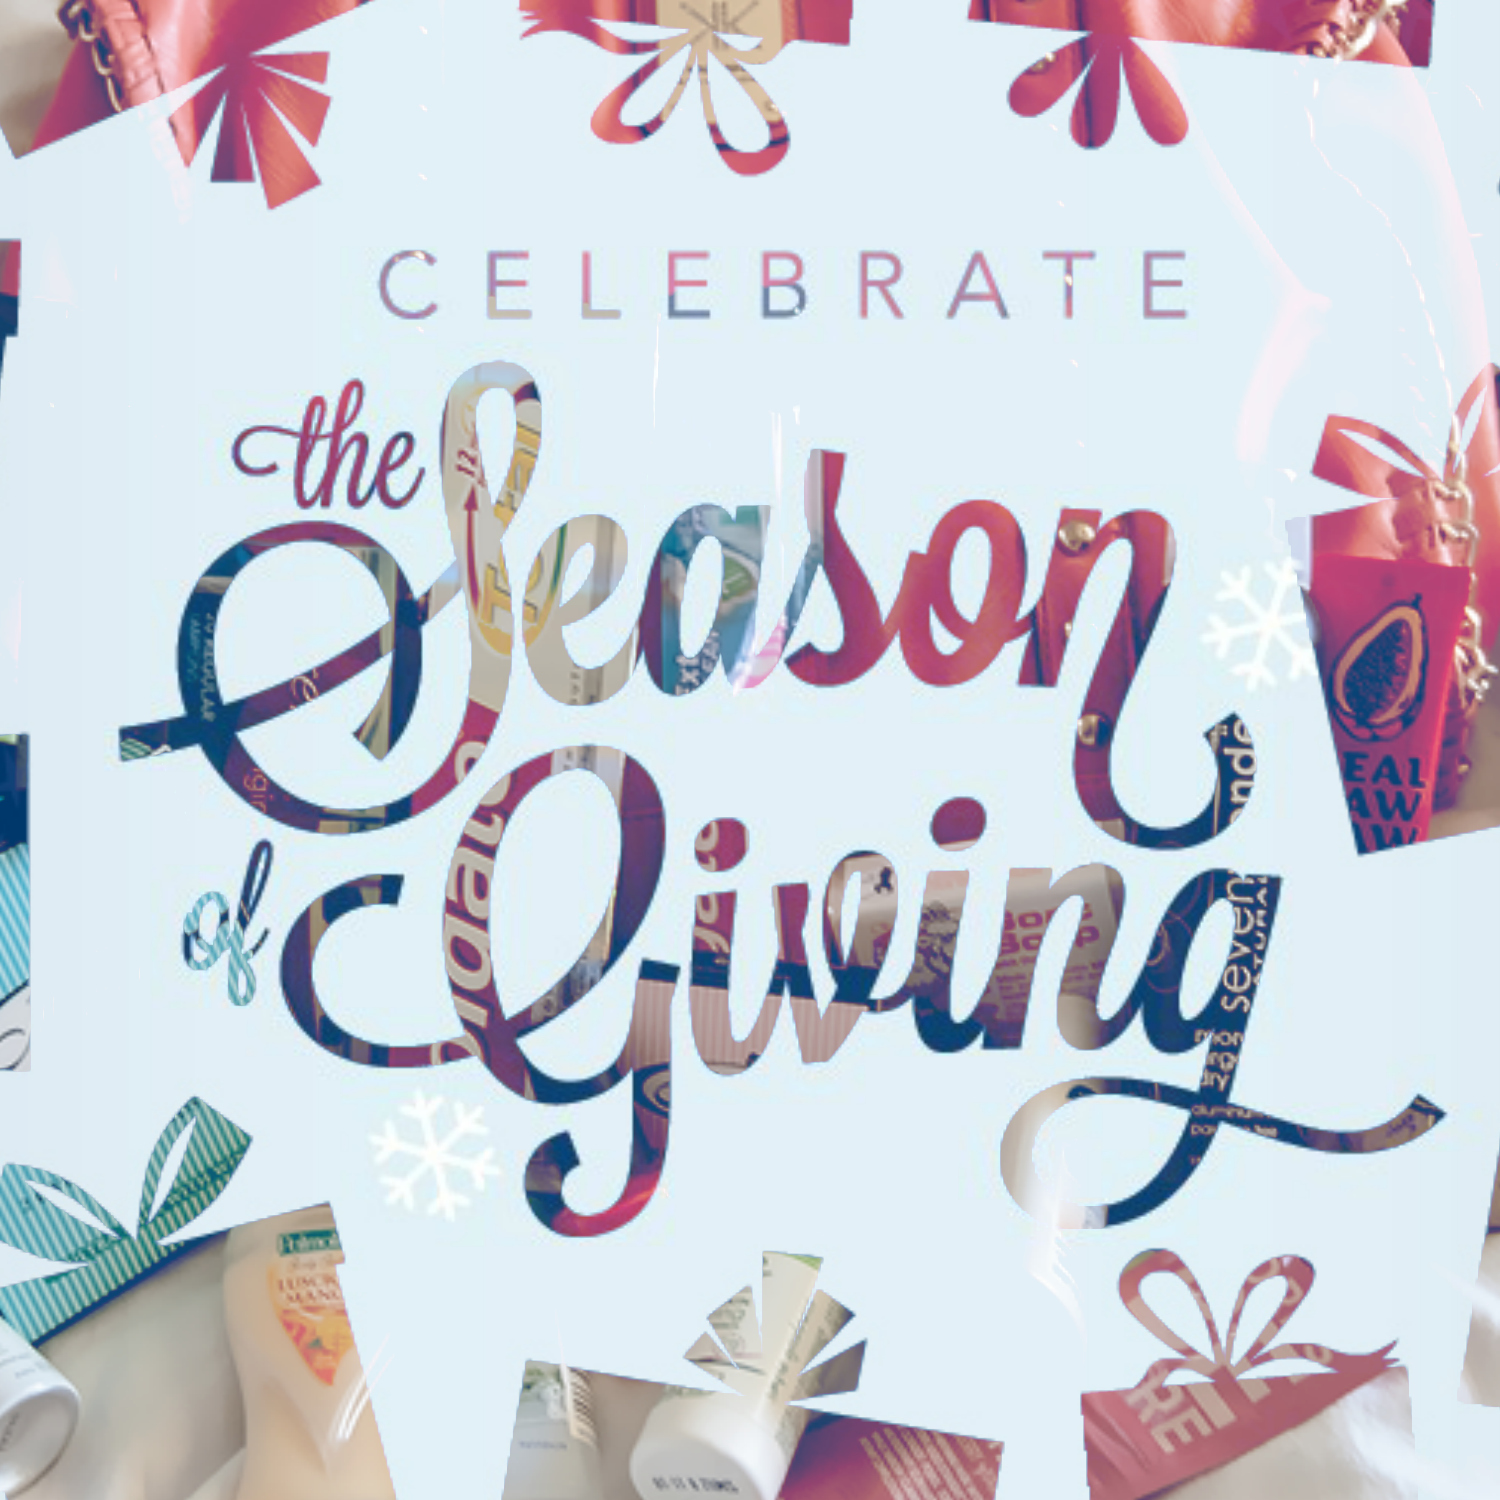 Celebrate the Season of Giving - The Best Christmas Charity Campaigns - Share the Dignity Its in the Bag